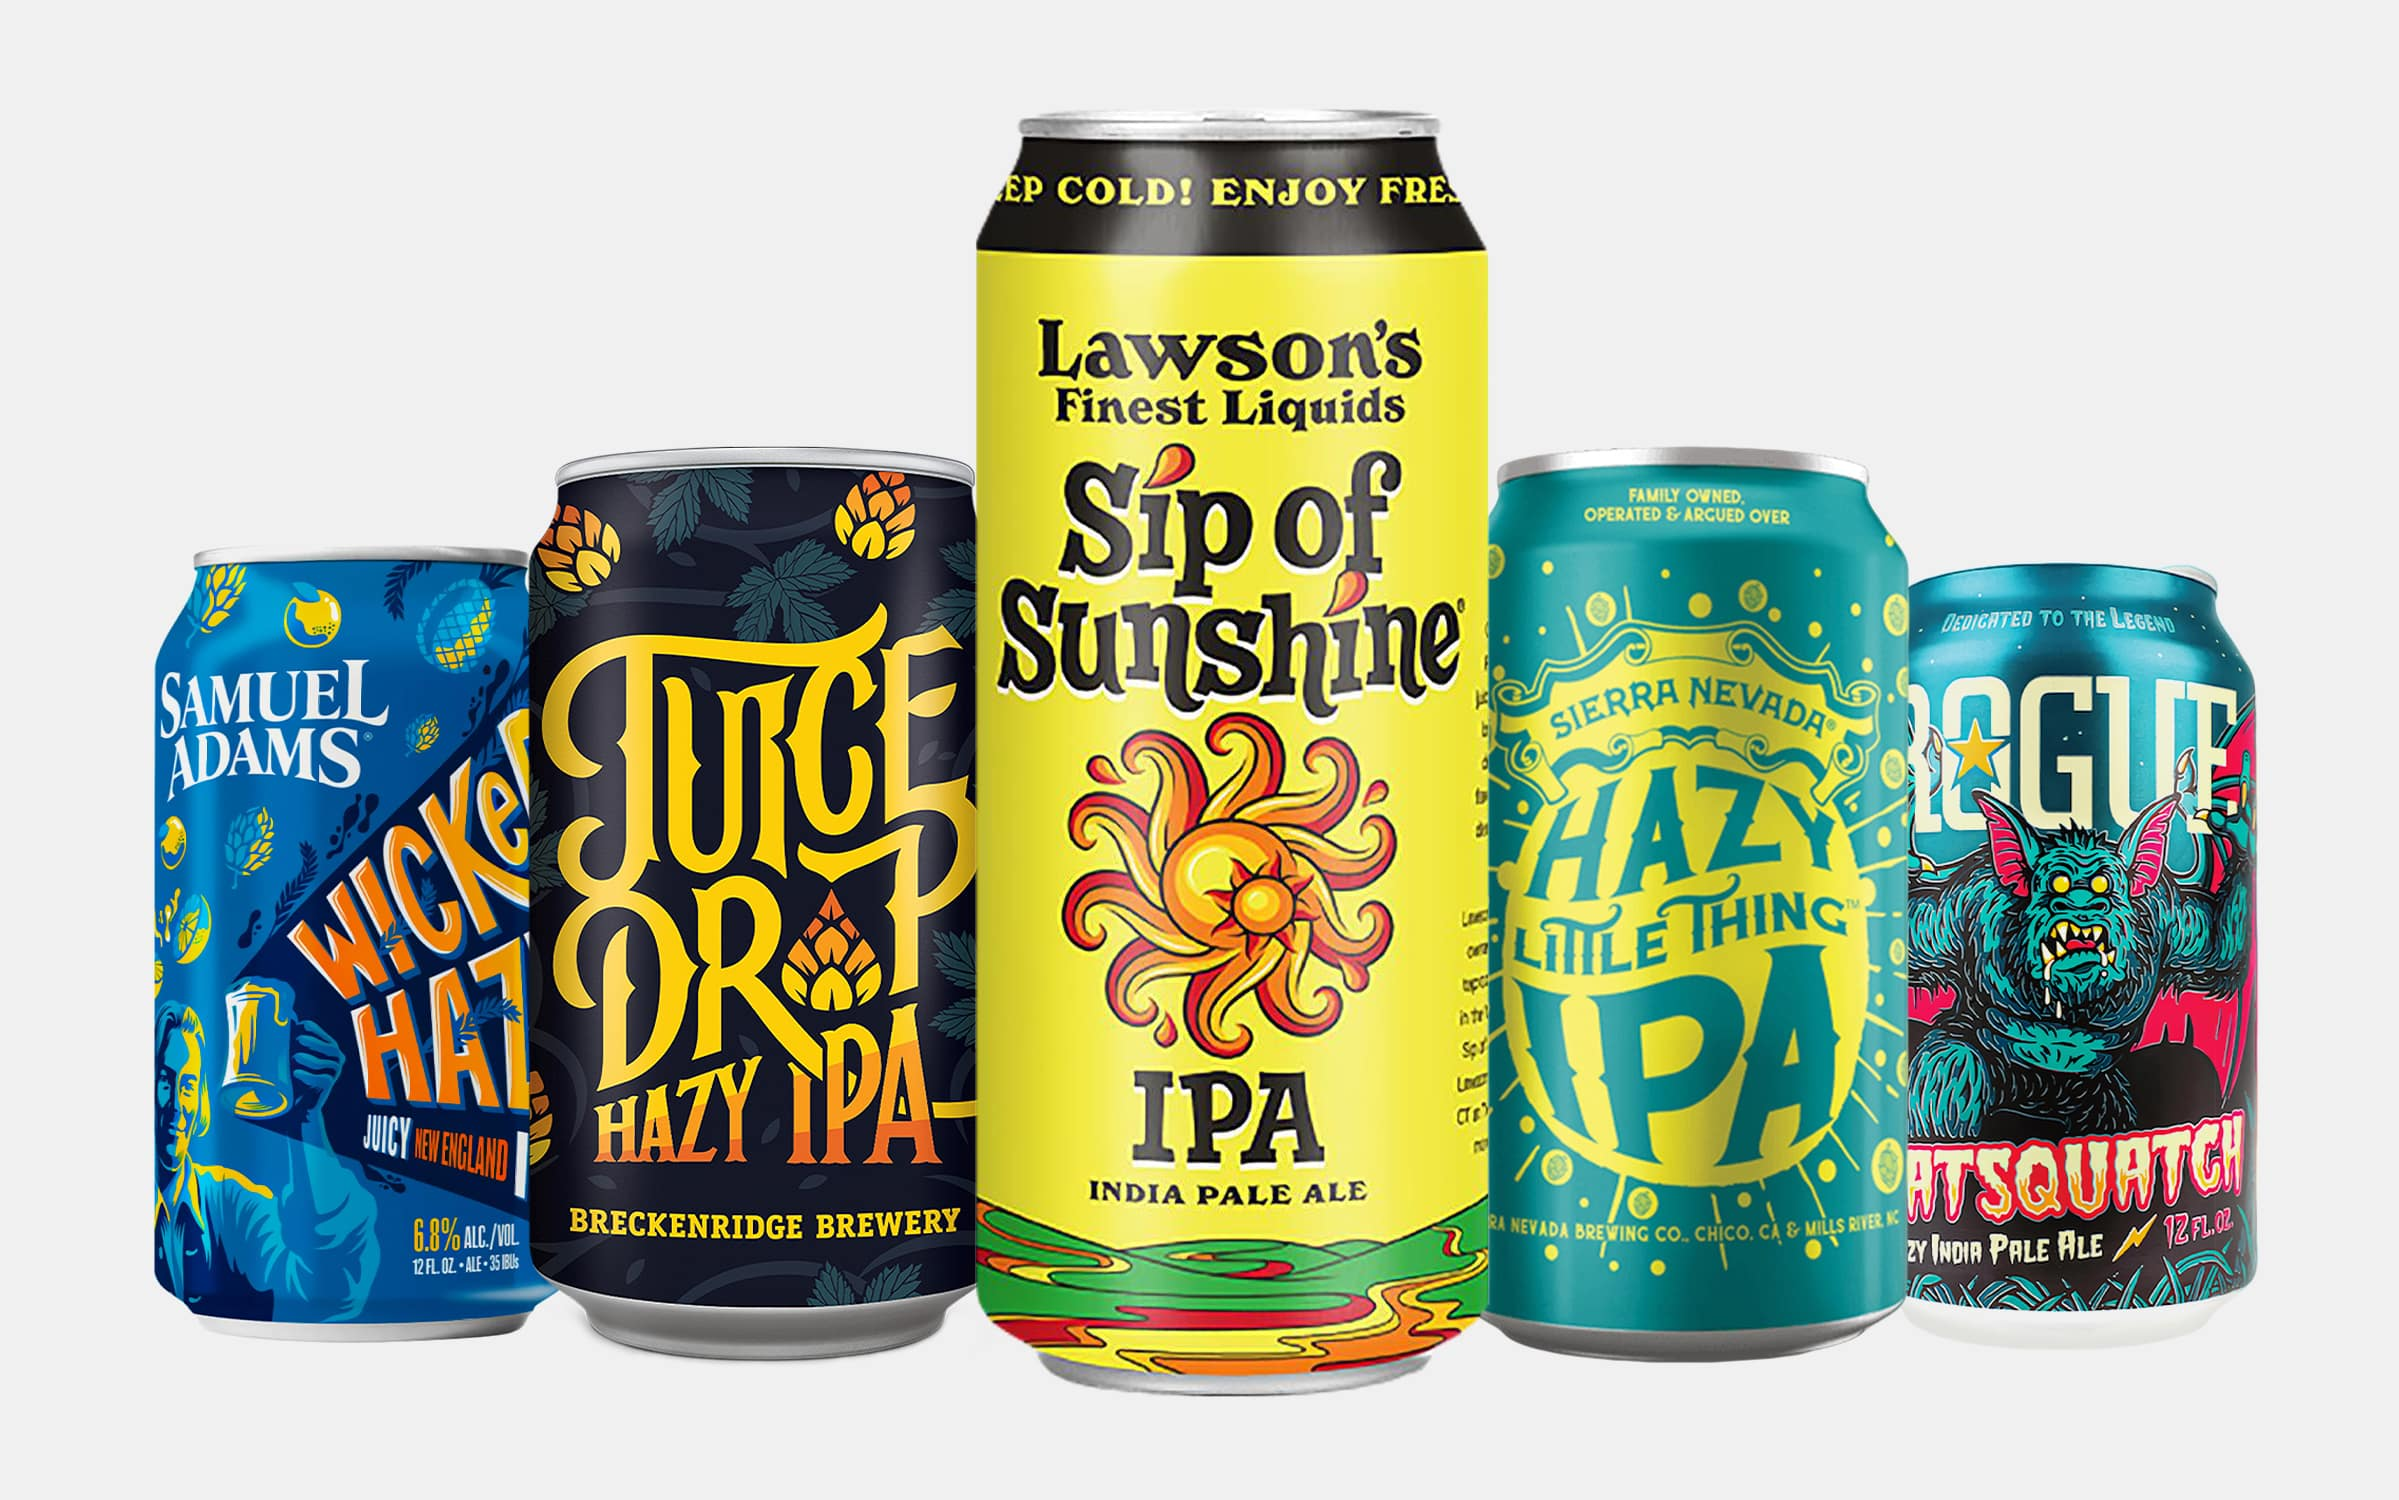 15 Hazy IPAs To Give You Can Extra Tropical Summer